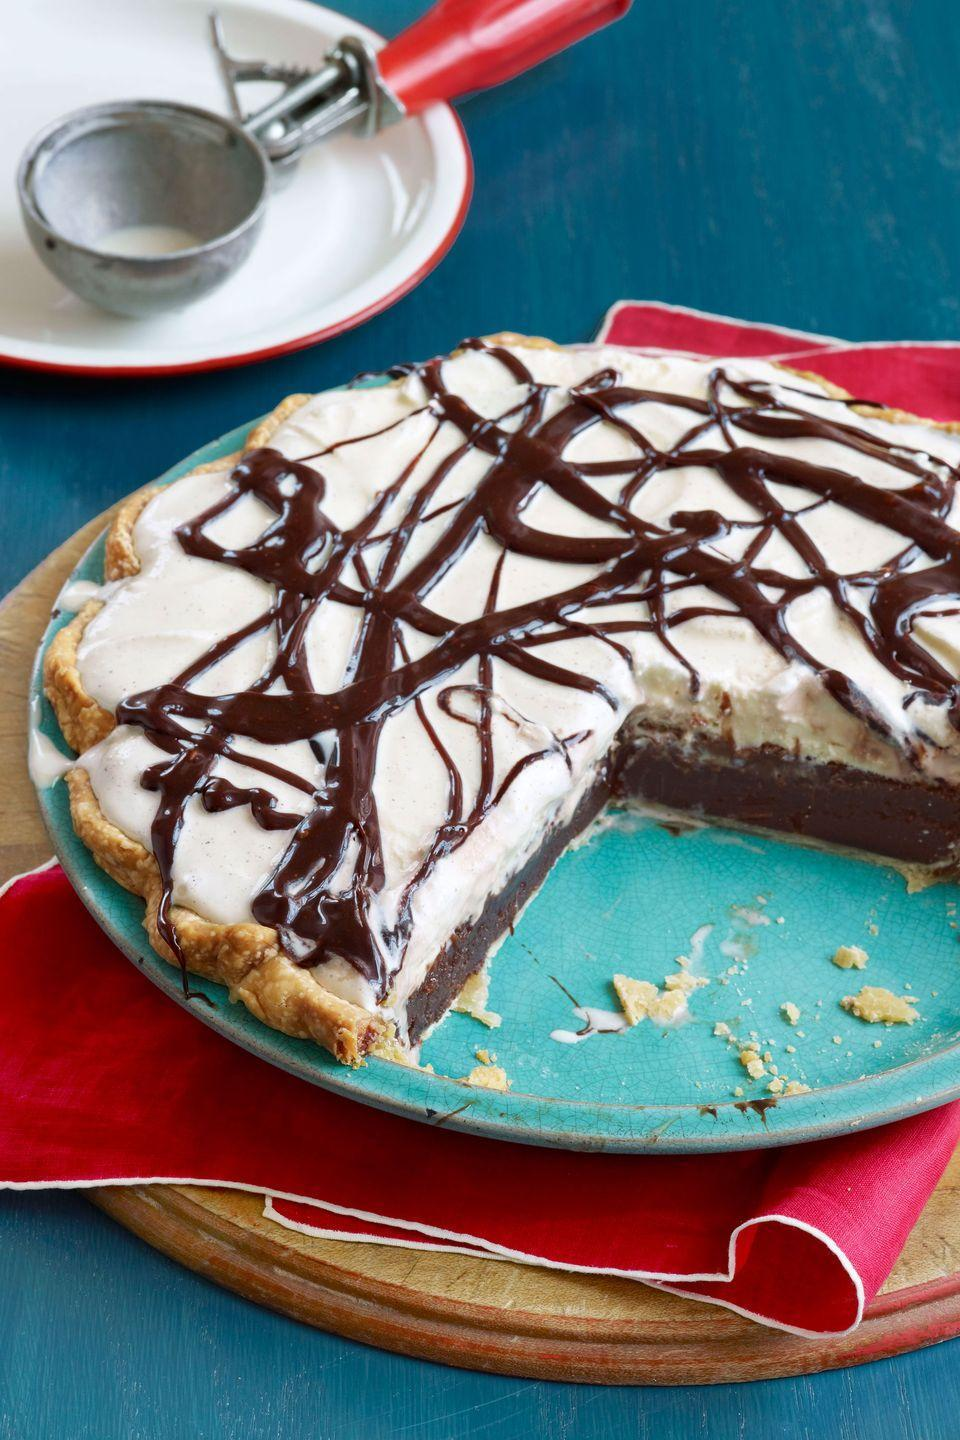 "<p>Create this mouthwatering pie with a layer of <a href=""https://www.countryliving.com/food-drinks/recipes/a1799/chocolate-custards-3920/"" rel=""nofollow noopener"" target=""_blank"" data-ylk=""slk:chocolate custard"" class=""link rapid-noclick-resp""><strong>chocolate custard</strong></a>, vanilla ice cream, and a drizzle of rich fudge sauce. </p><p><strong><a href=""https://www.countryliving.com/food-drinks/recipes/a3380/mississippi-mud-pie-recipe-clv0510/"" rel=""nofollow noopener"" target=""_blank"" data-ylk=""slk:Get the recipe."" class=""link rapid-noclick-resp"">Get the recipe.</a></strong></p>"